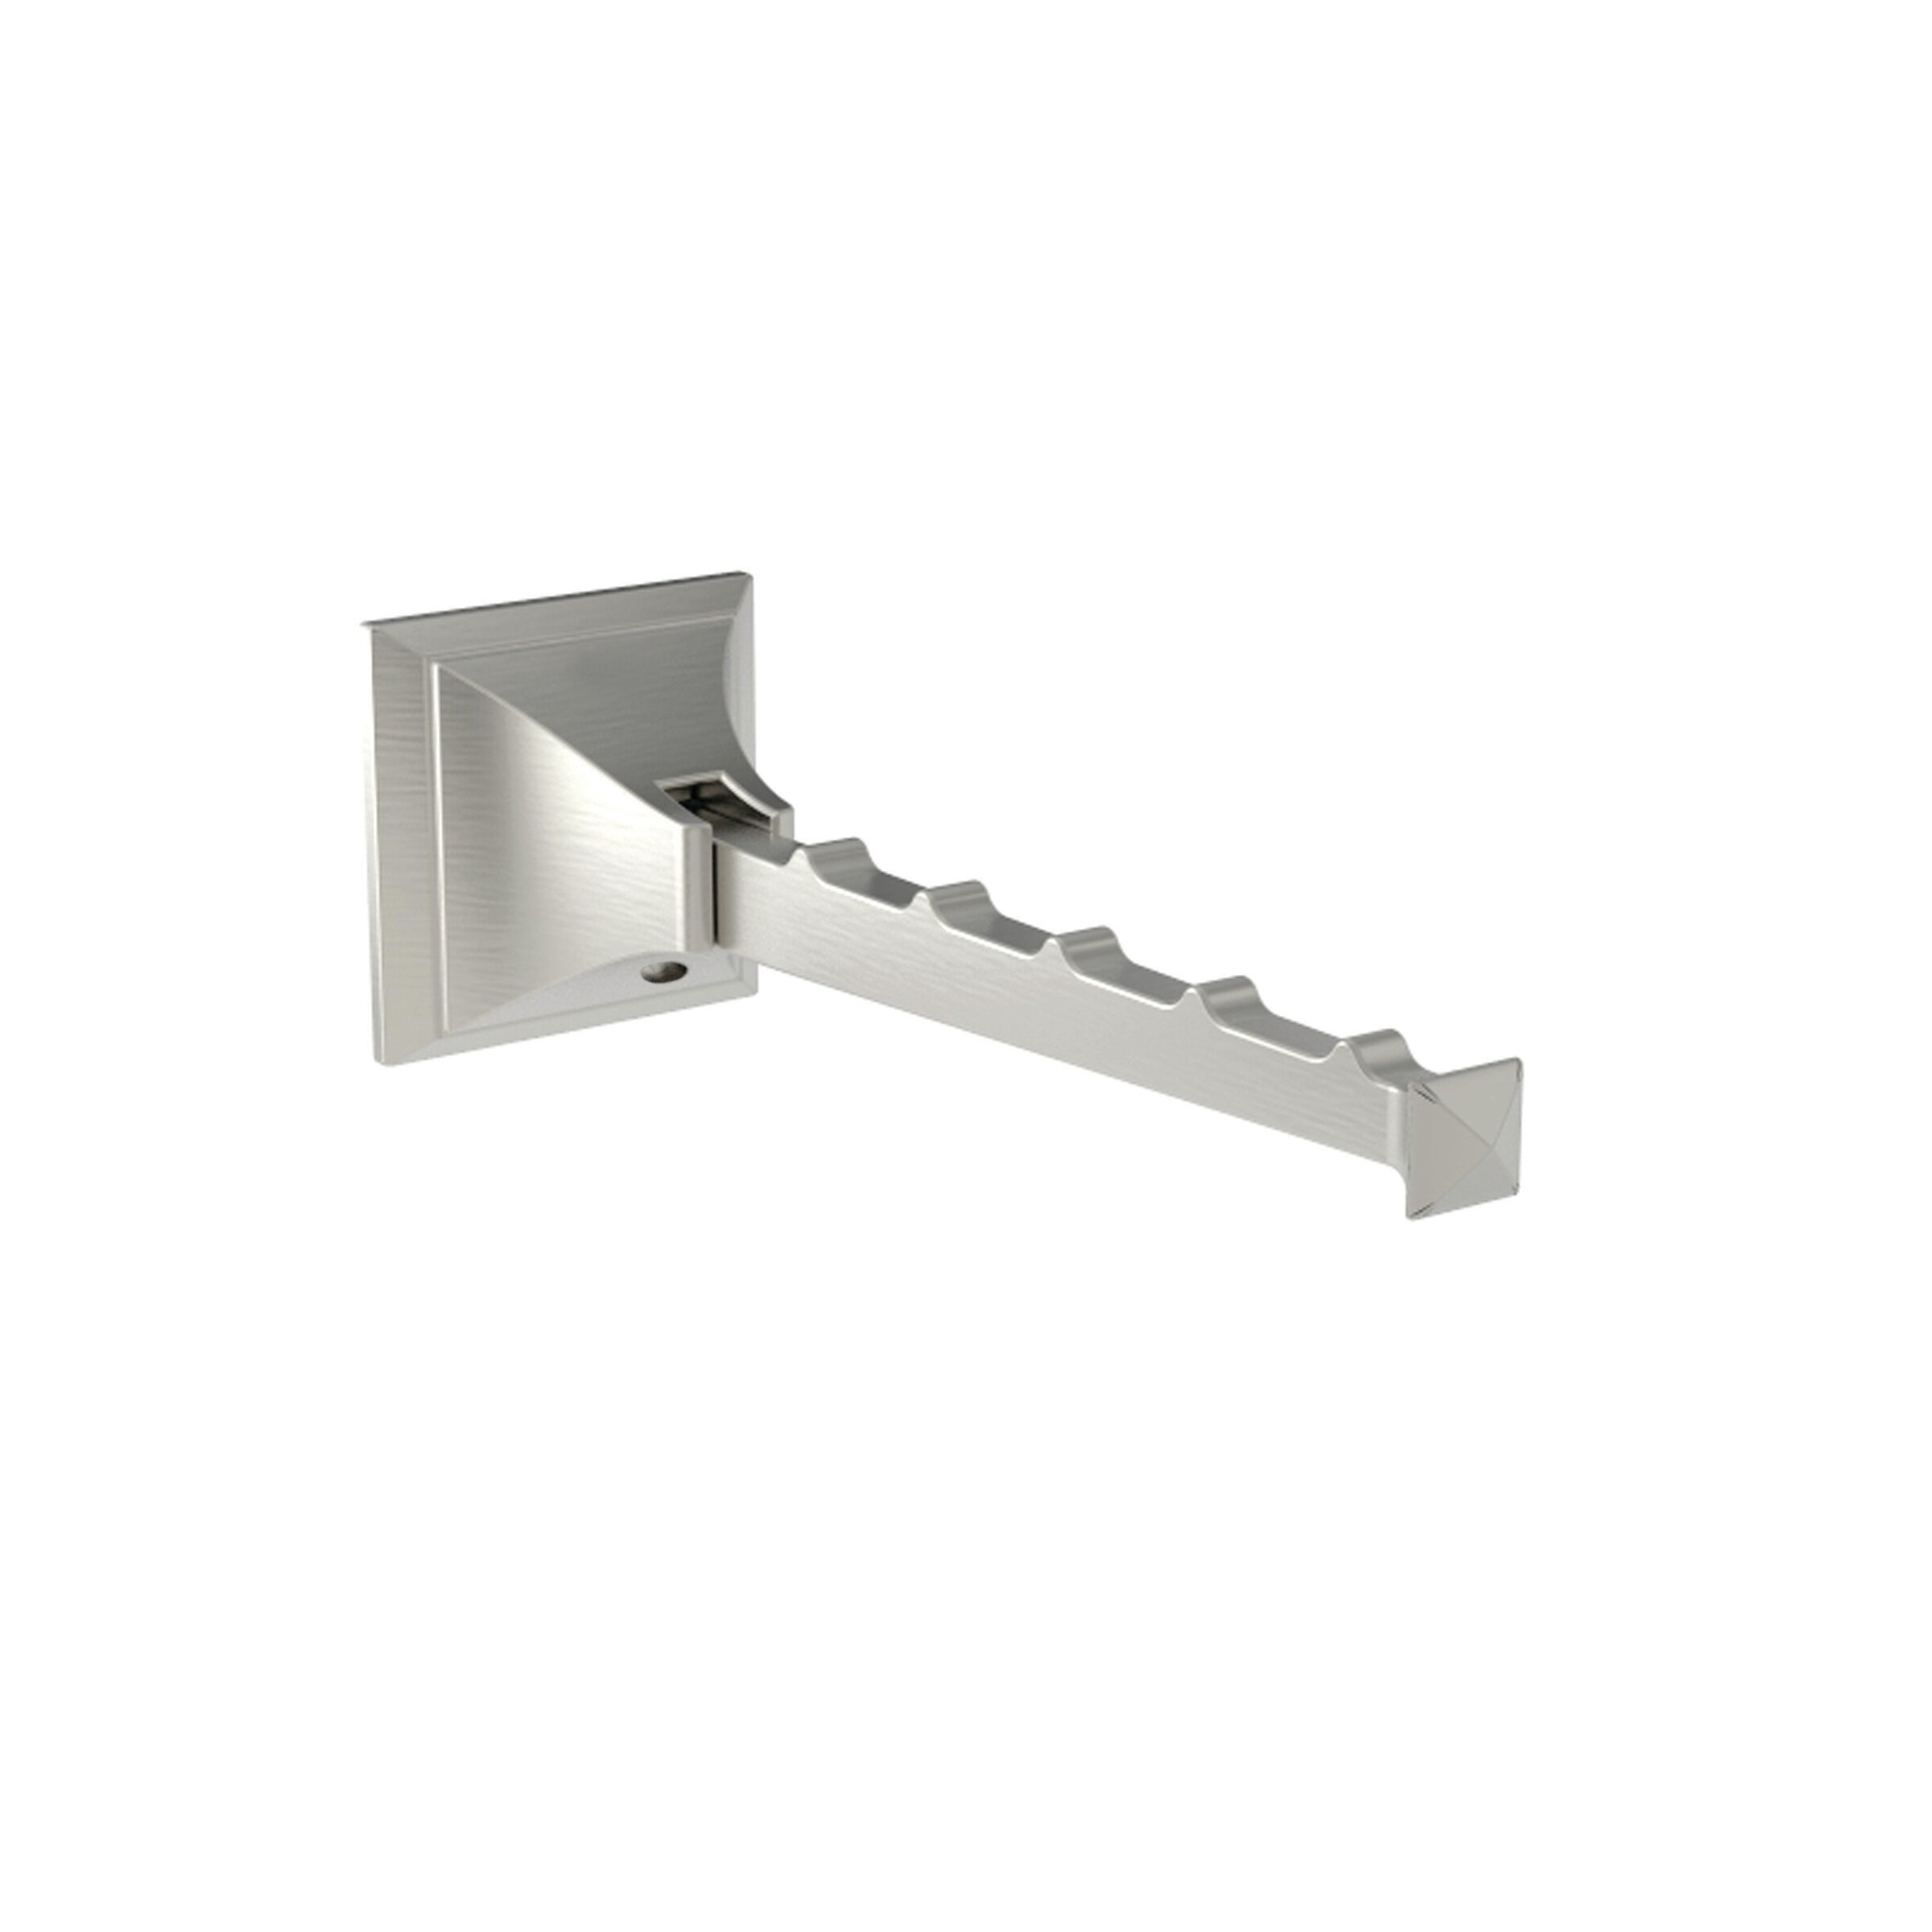 Ginger Cayden Valet Wall Mounted Robe Hook Perigold